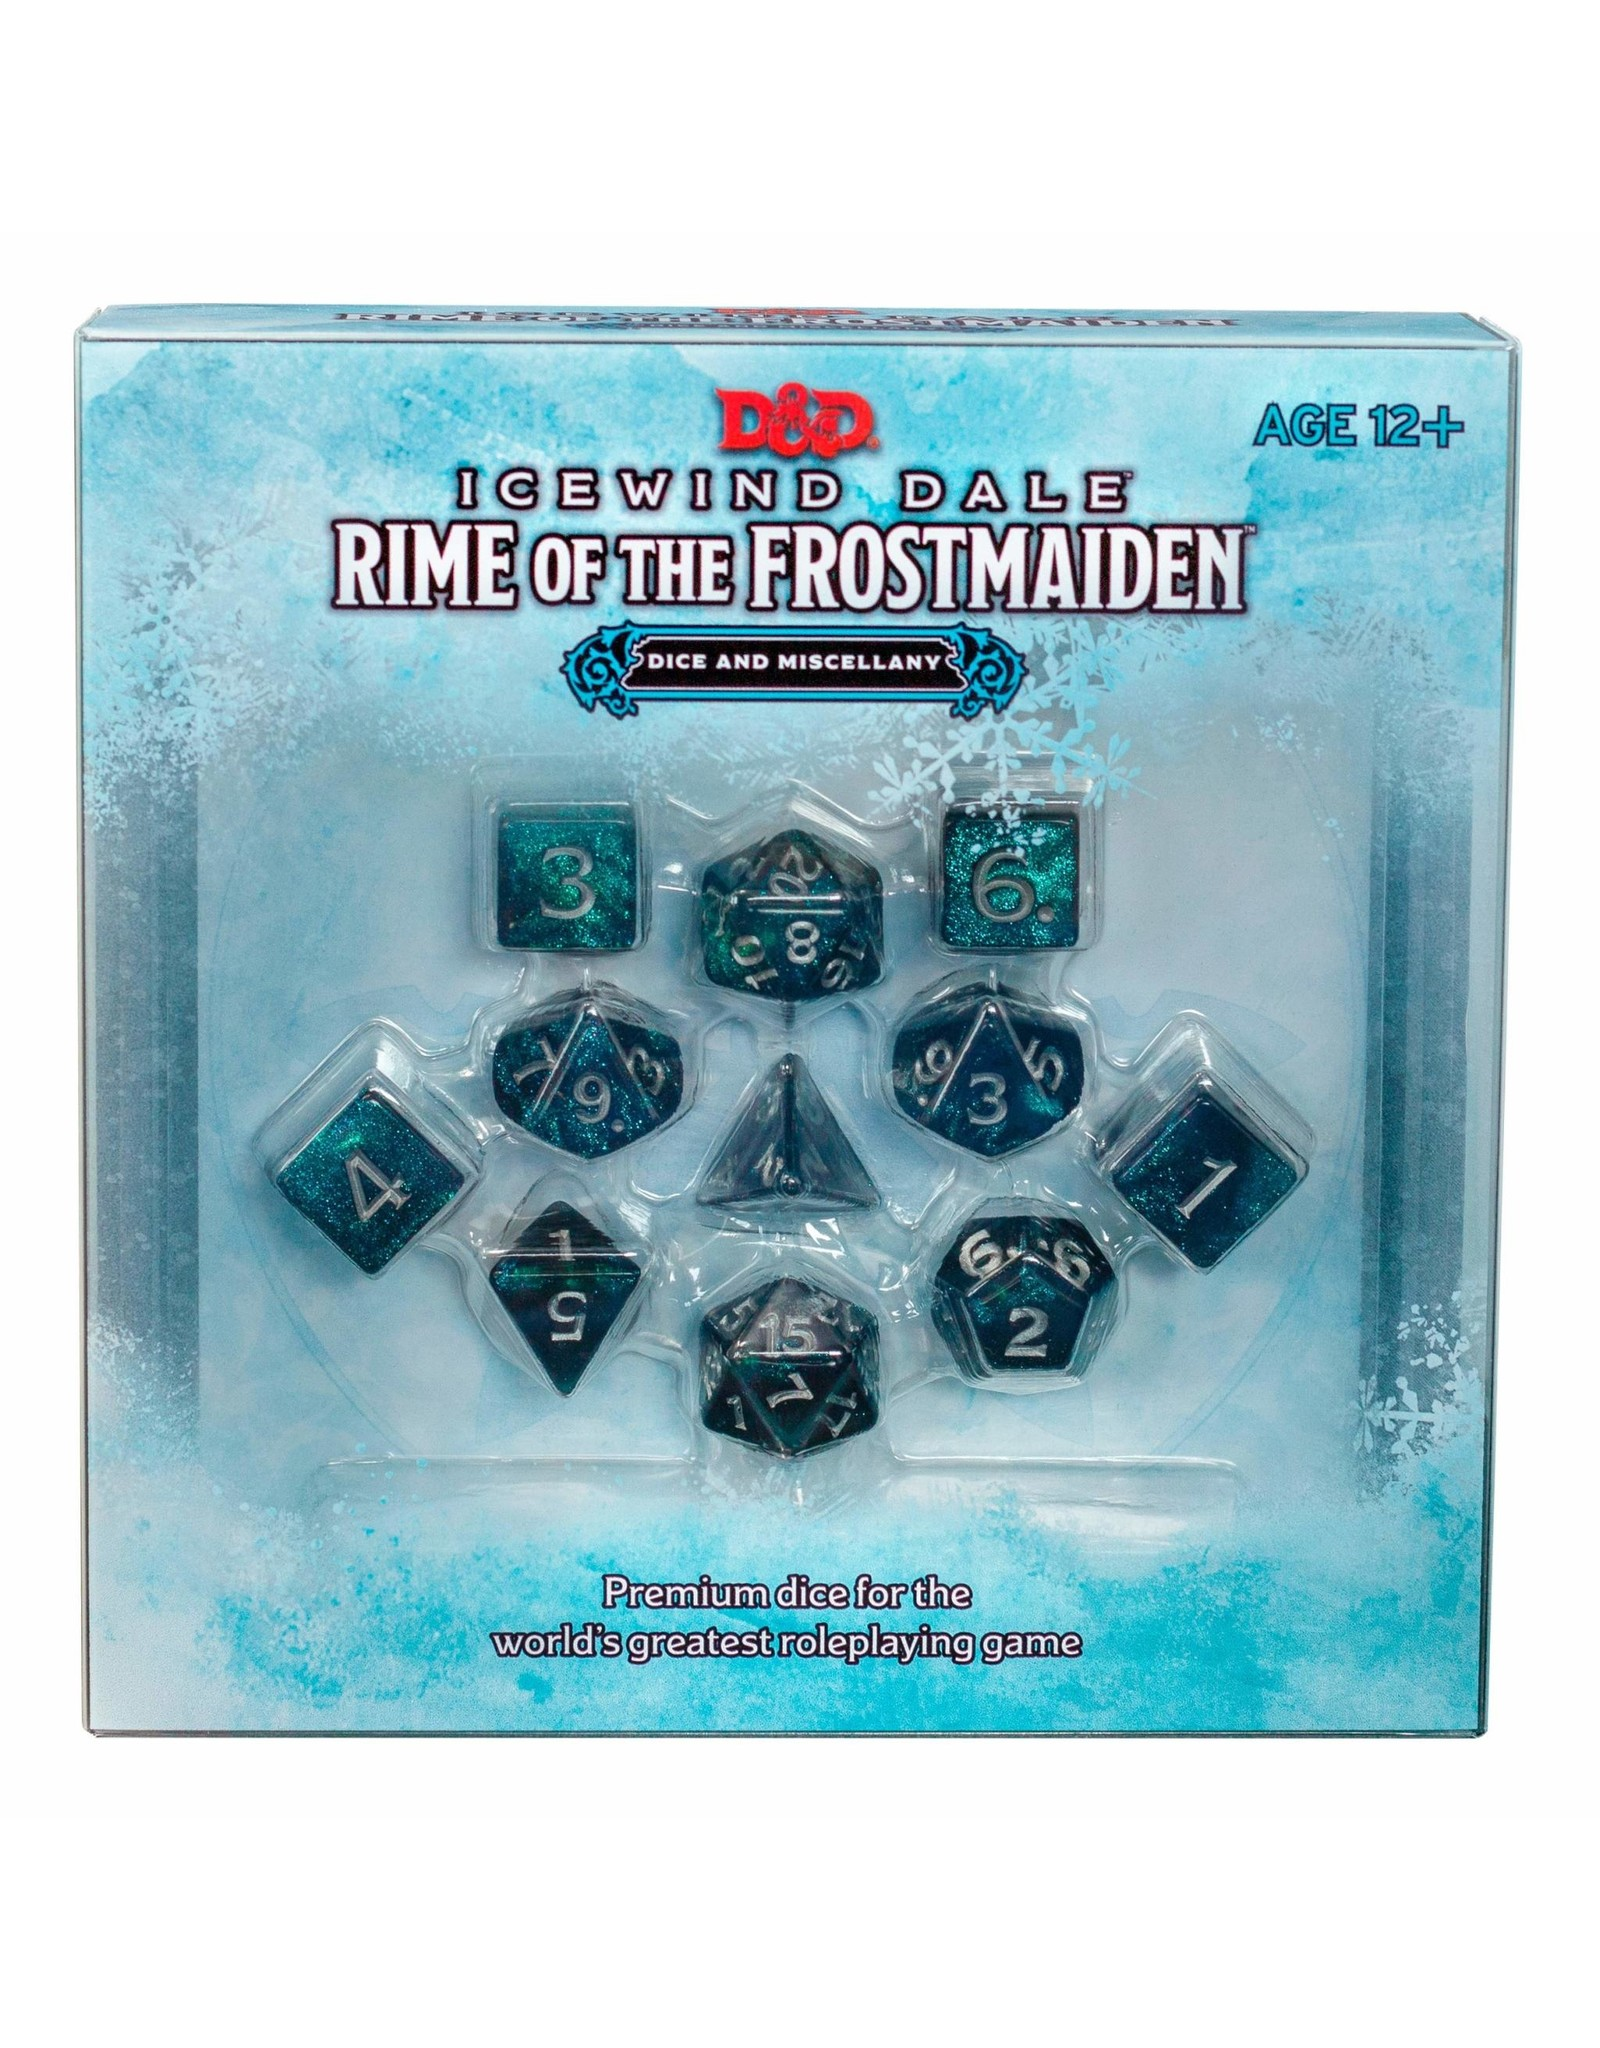 WIZARDS OF THE COAST ICEWIND DALE RIME OF THE FROSTMAIDEN DICE AND MISCELLANY